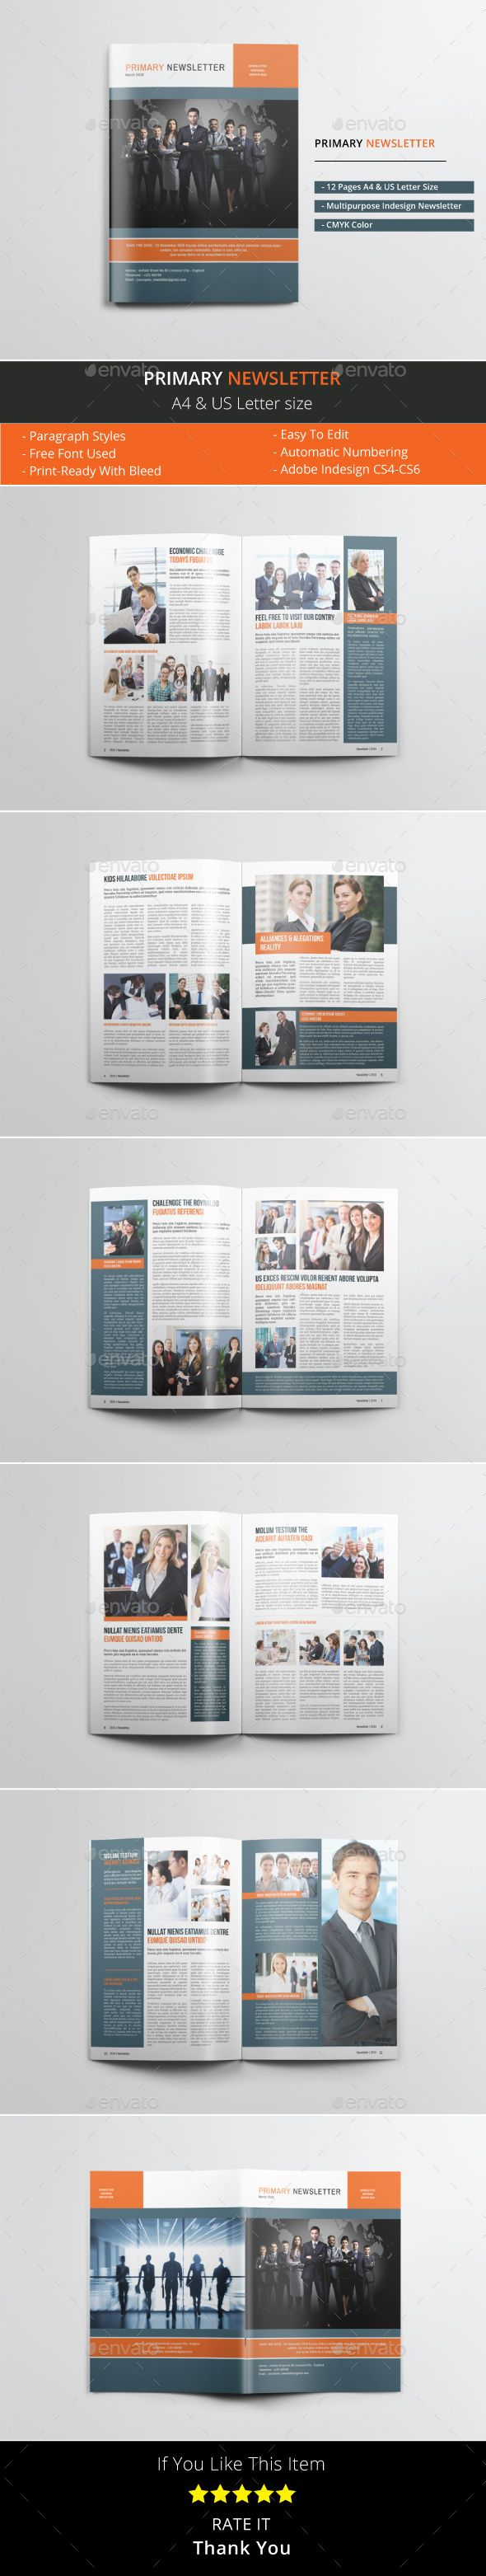 Primary Newsletter Template Indesign Indd 12 Pages A4 Us Letter